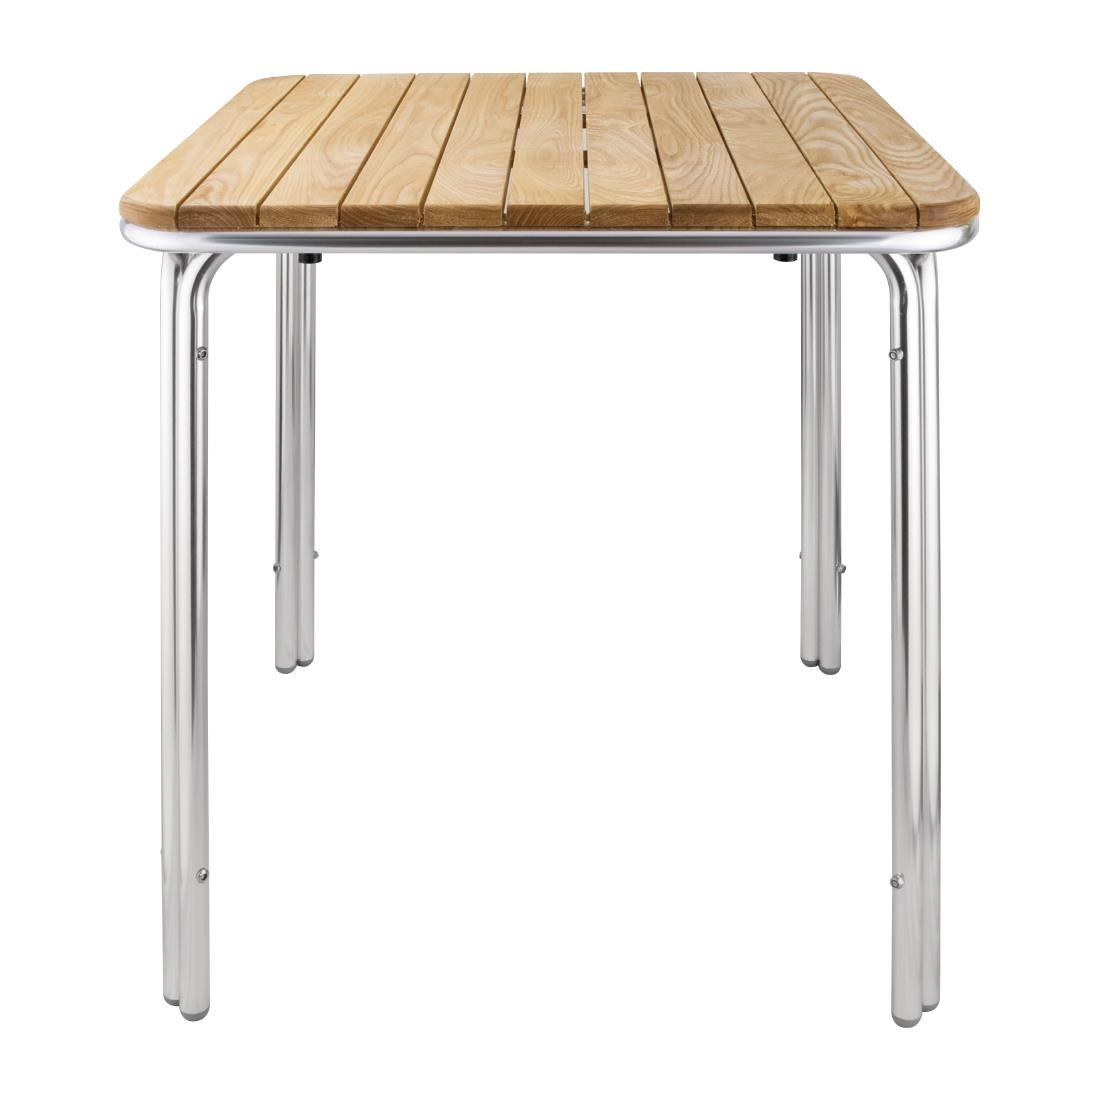 Aluminium + Ash Table GL98 - Square